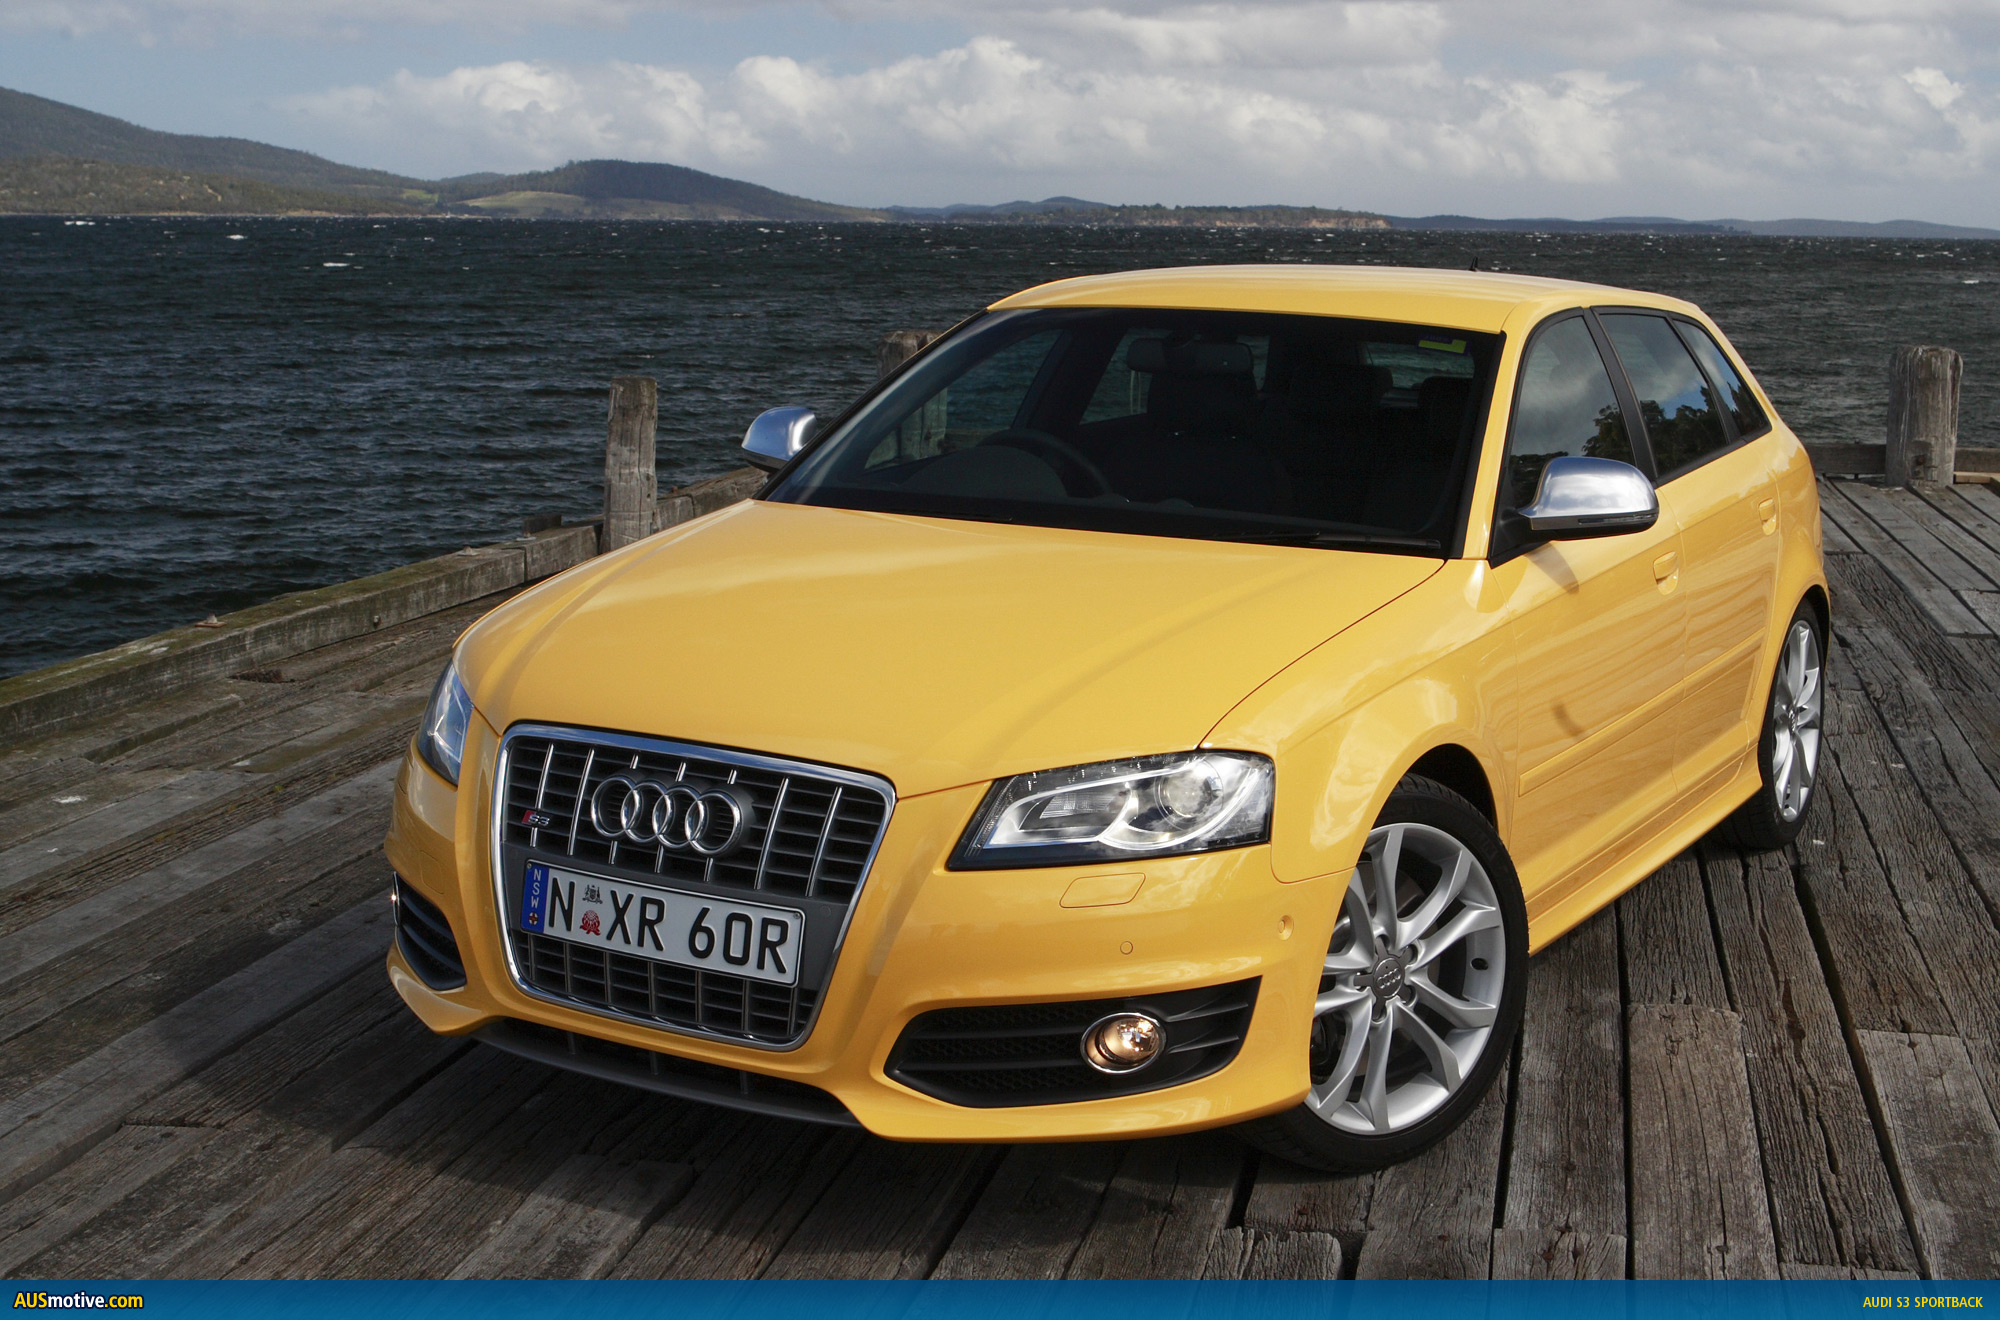 audi s3 sportback docks down under. Black Bedroom Furniture Sets. Home Design Ideas